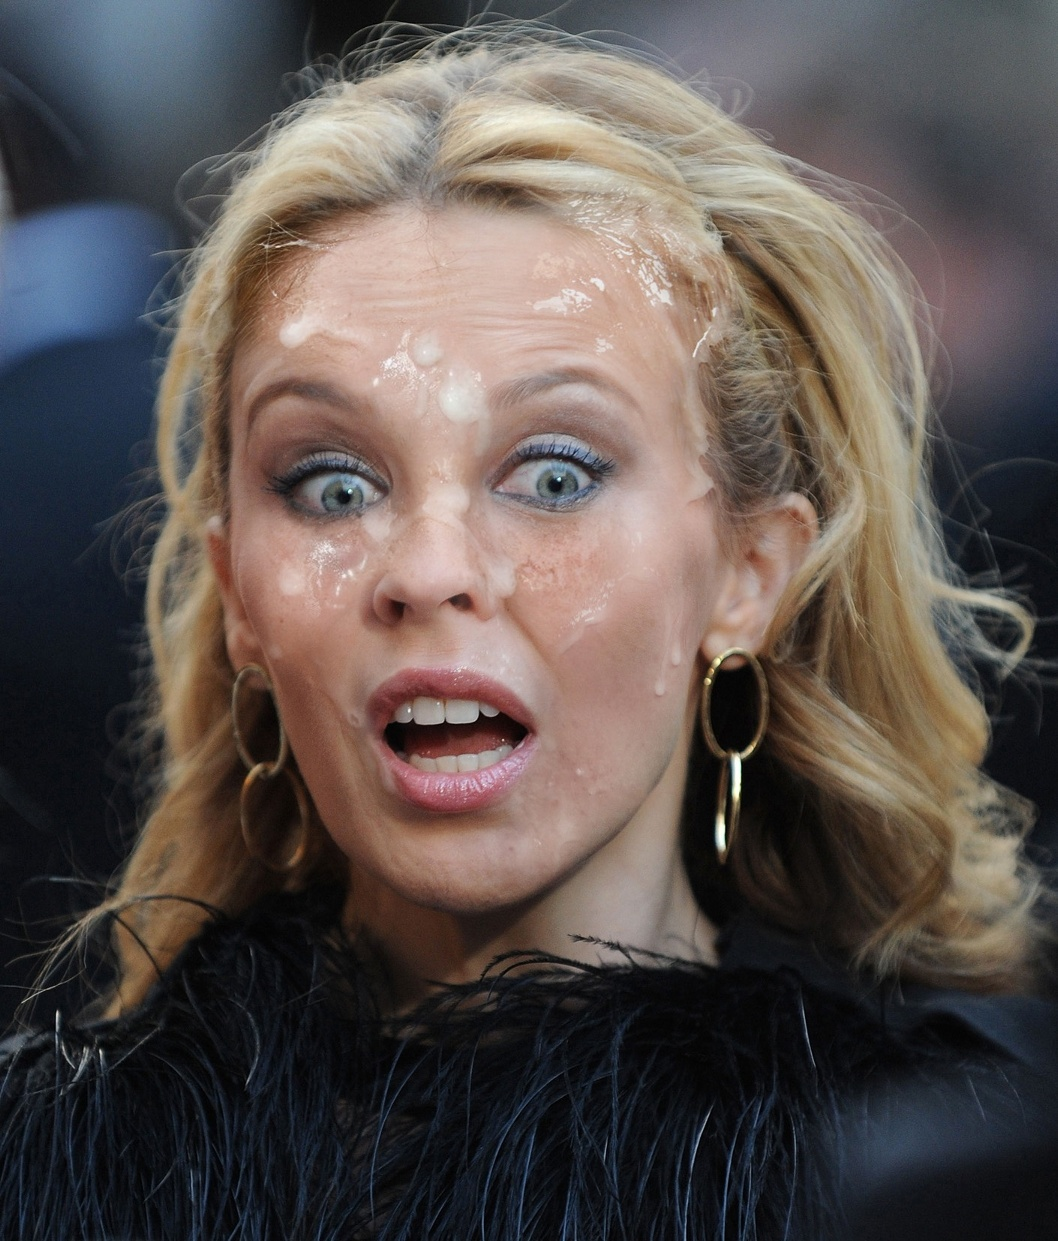 Kylie minogue fakes